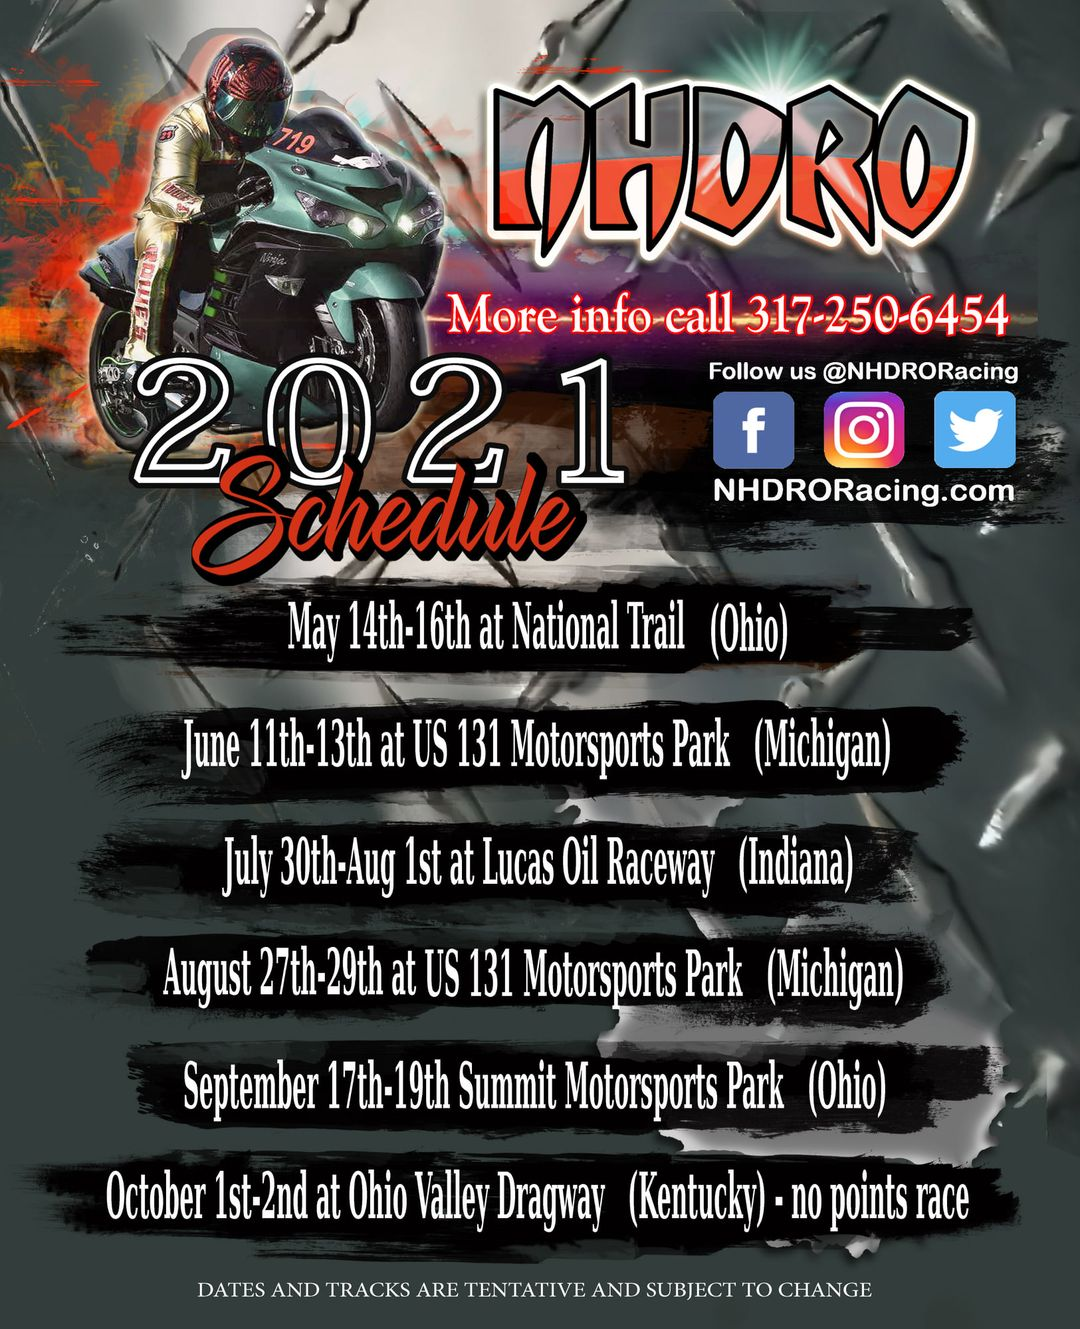 NHDRO 2021 Motorcycle Drag Racing Schedule